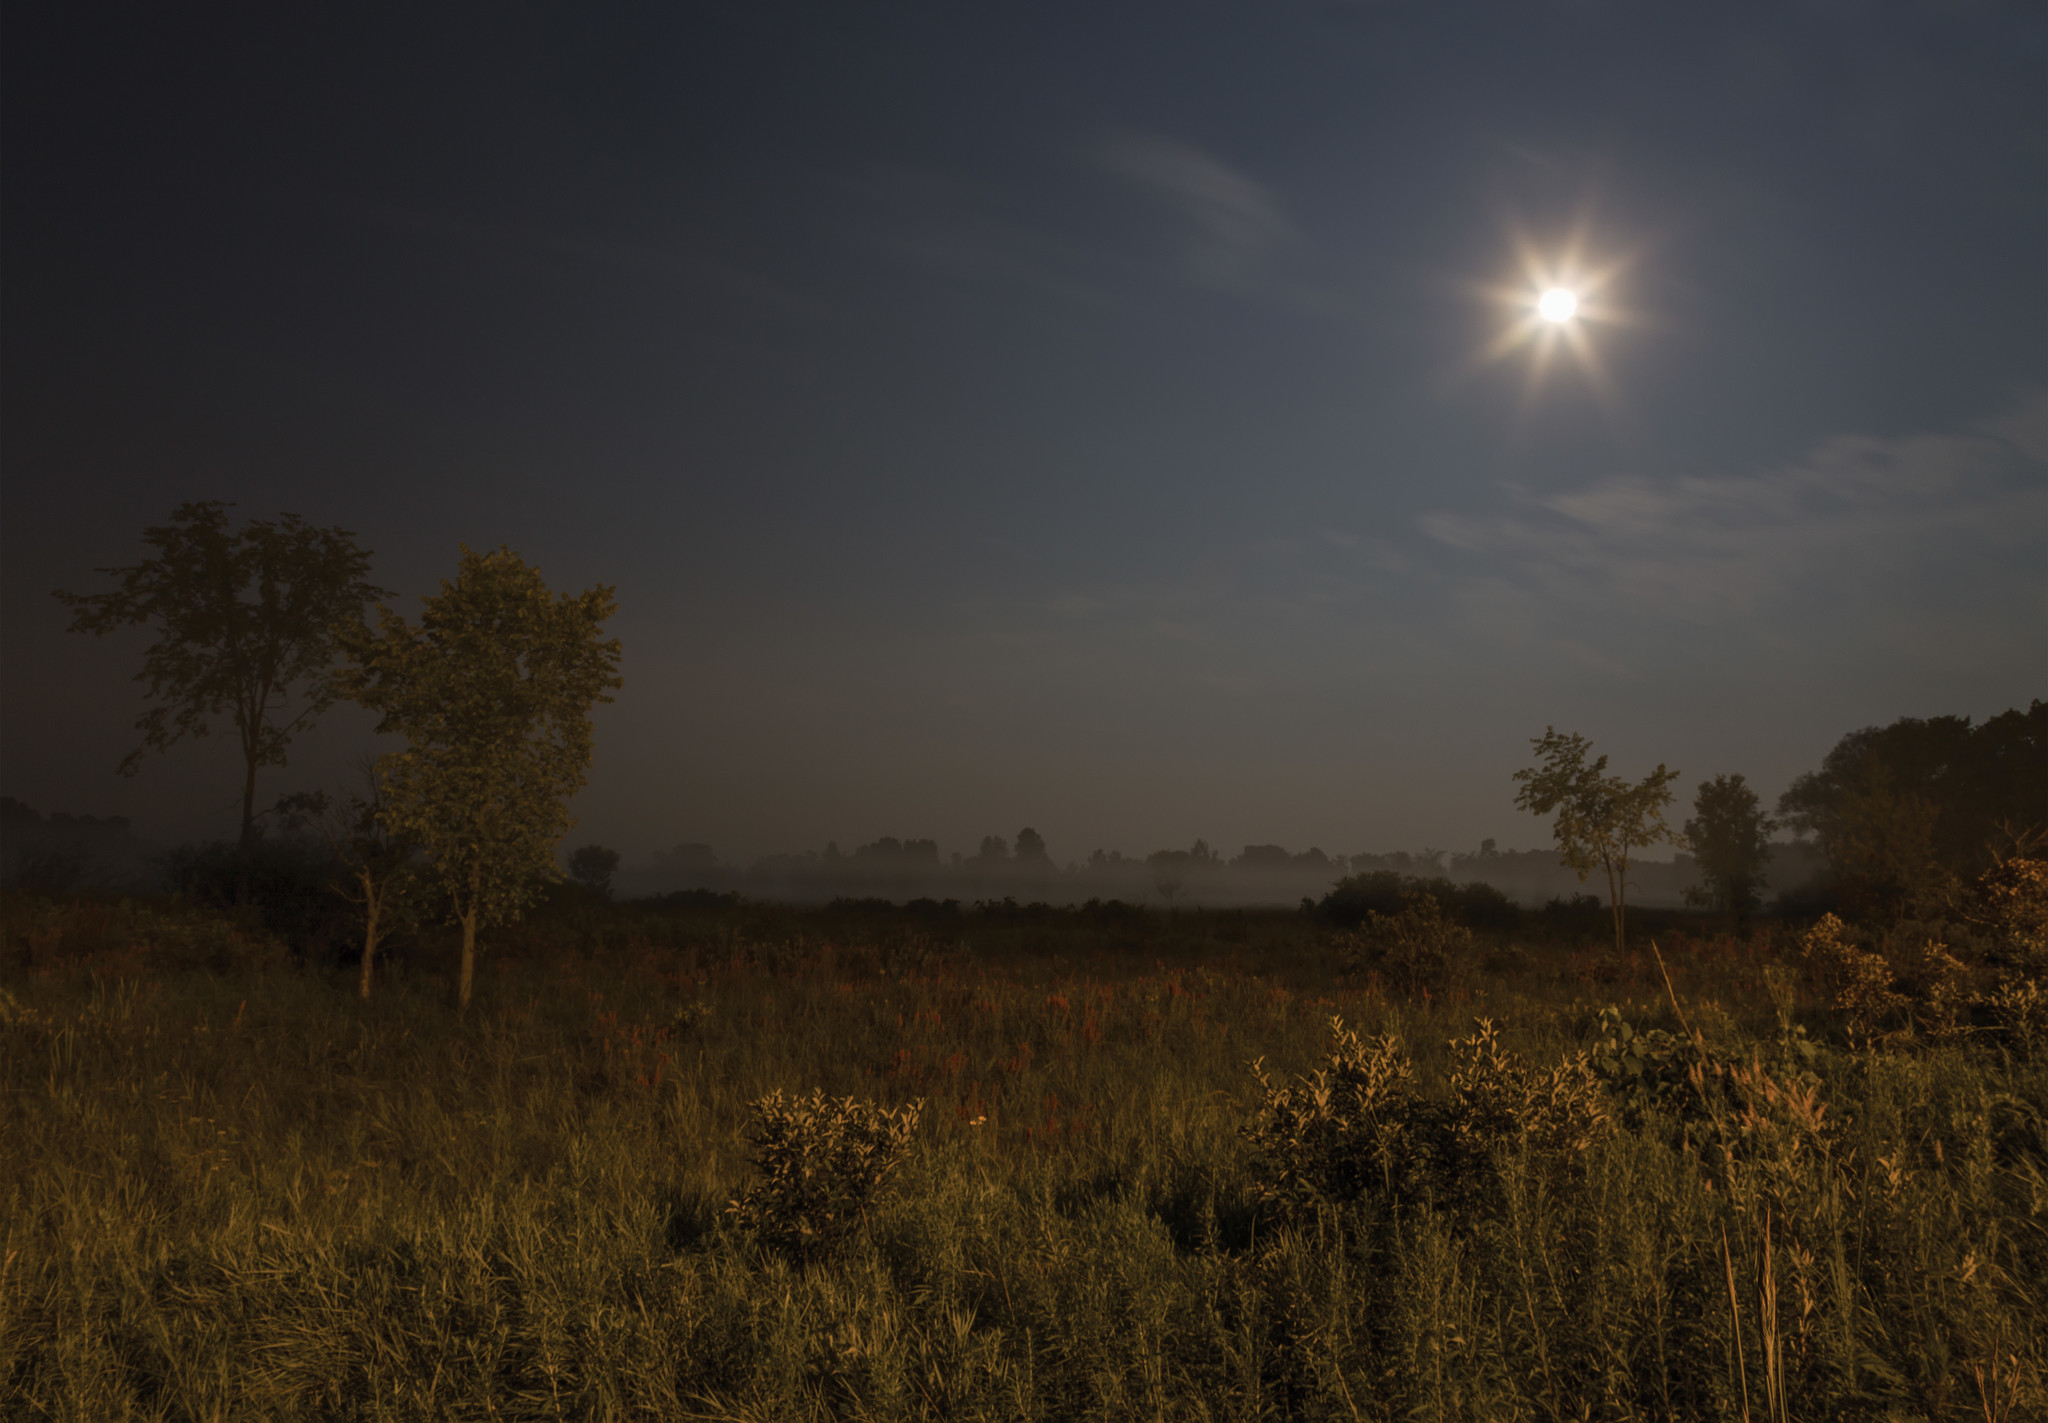 """St. Clair County, Michigan,"" from Jeanine Michna-Bales' ""In Through Darkness to Light: Photographs Along the Underground Railroad."""